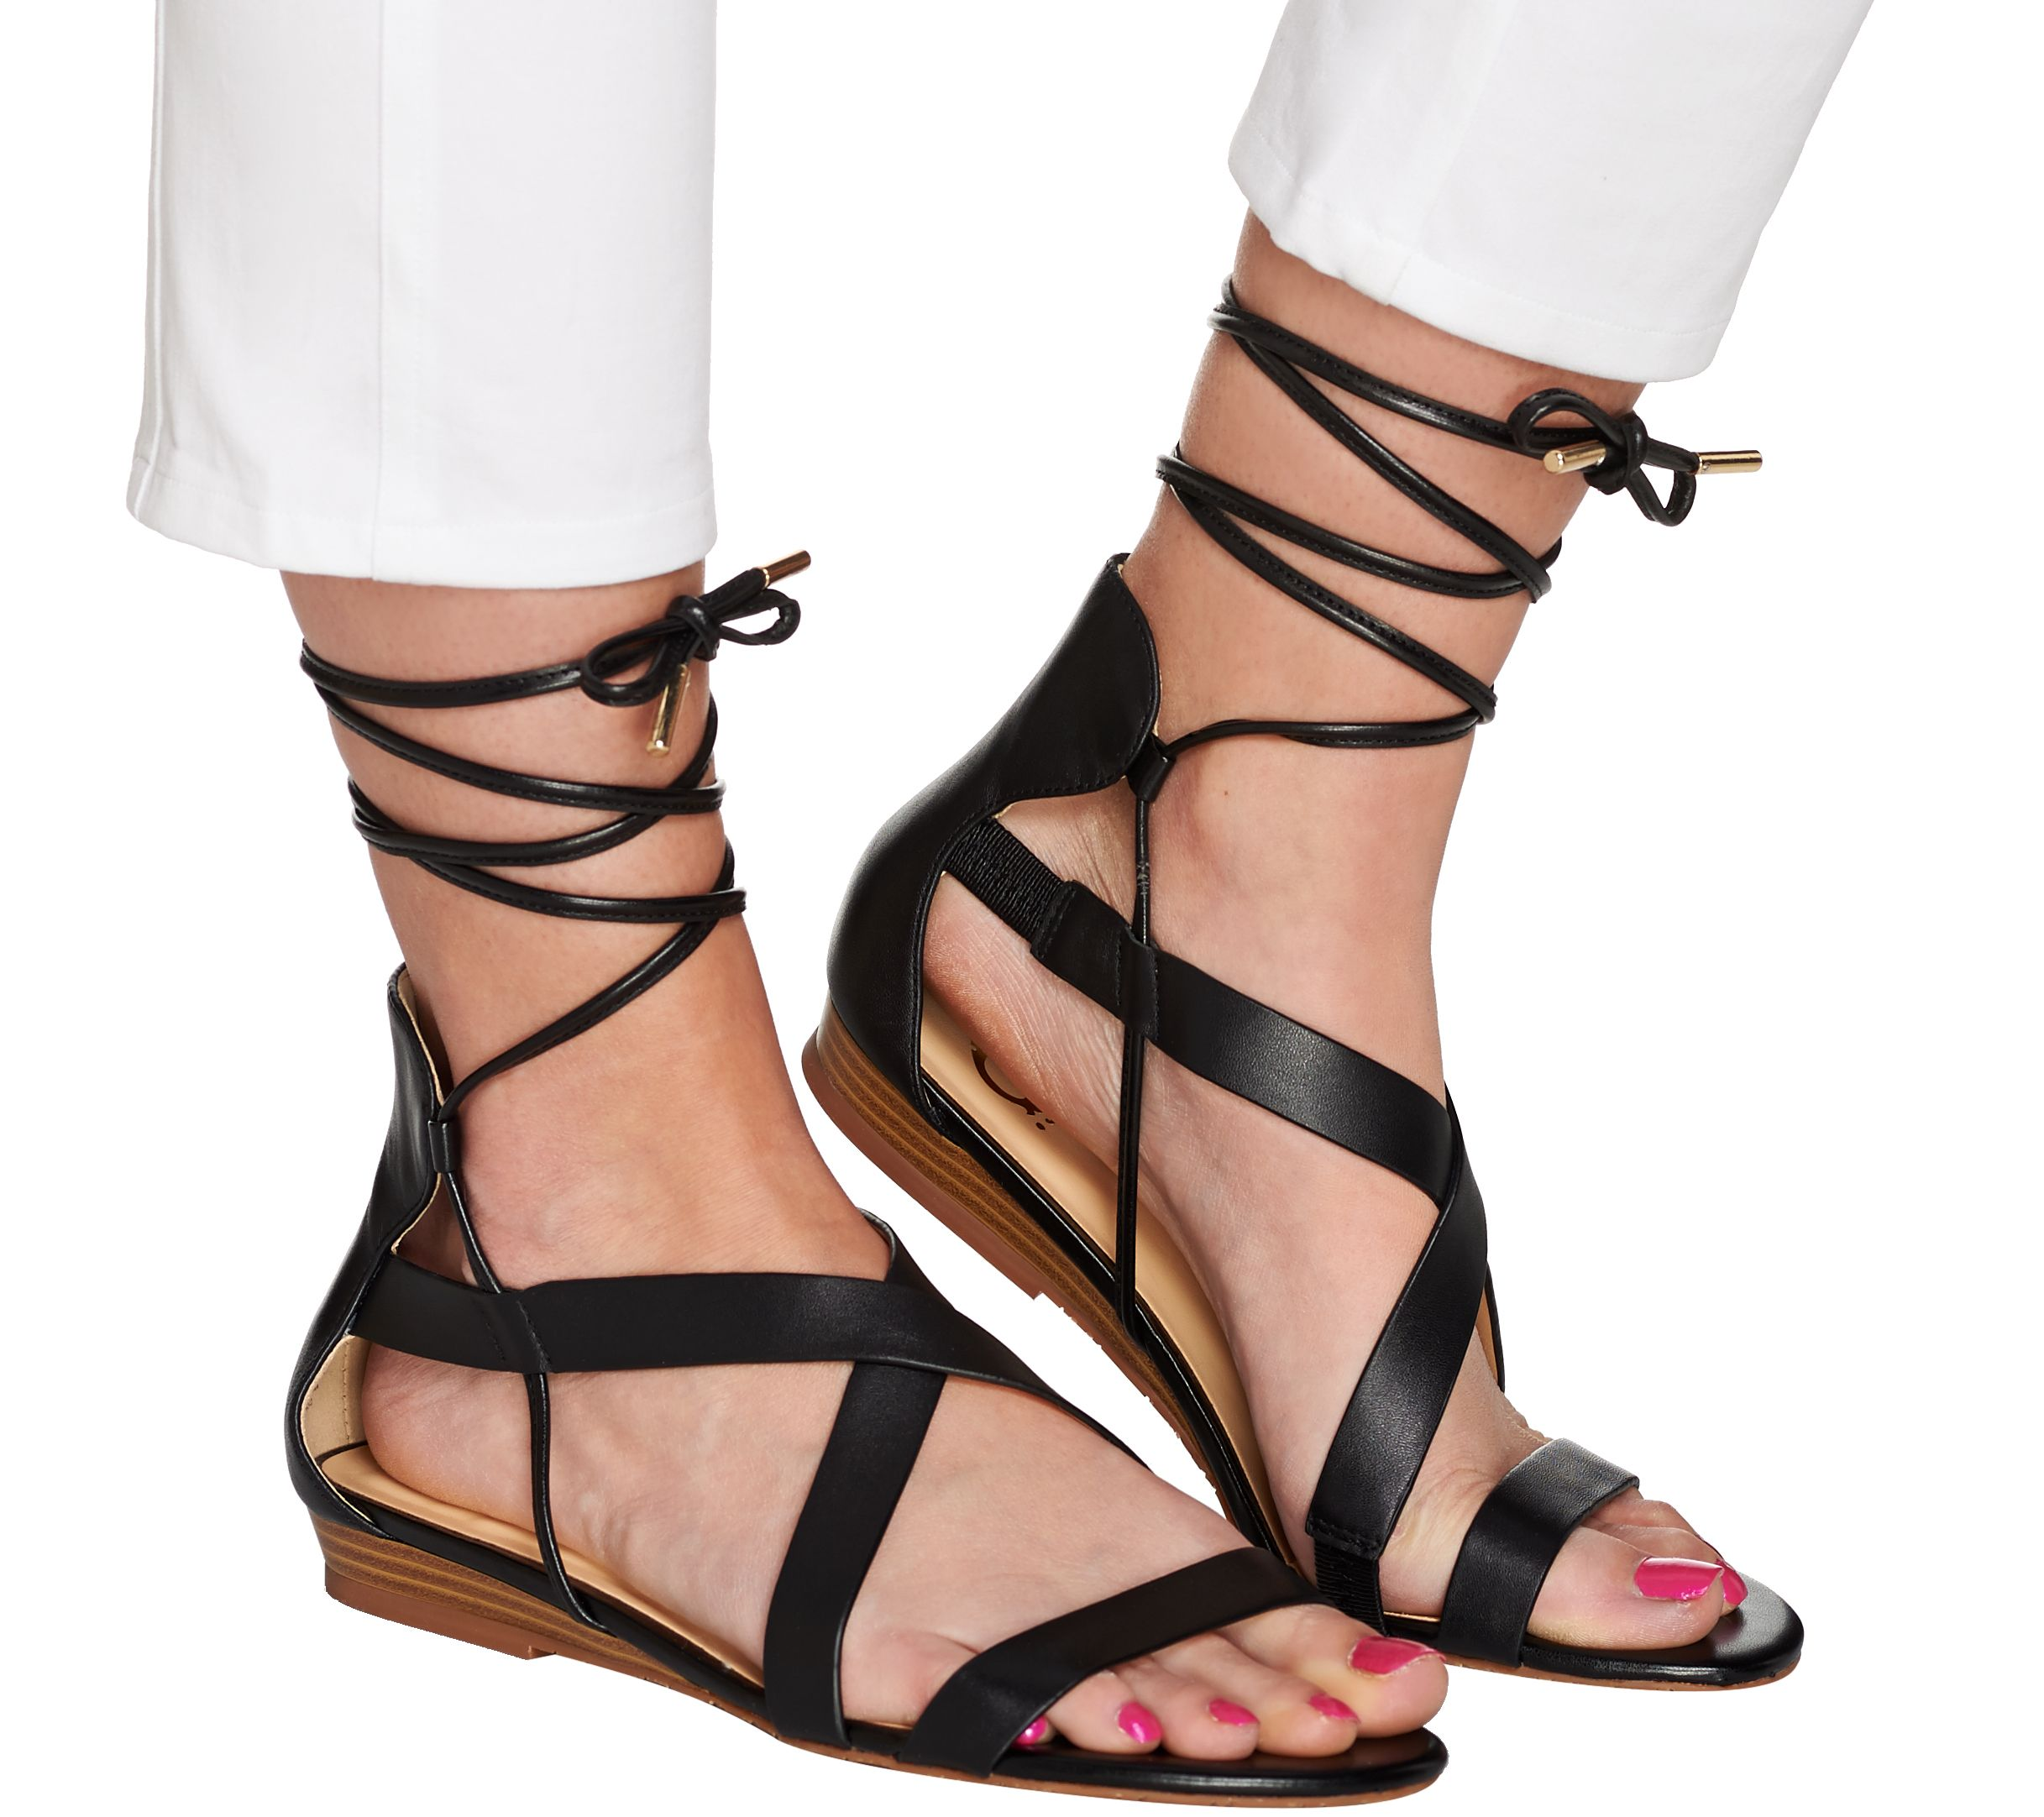 a6ed3639534c C. Wonder Lace-up Leather Gladiator Sandals - Lyla - Page 1 — QVC.com